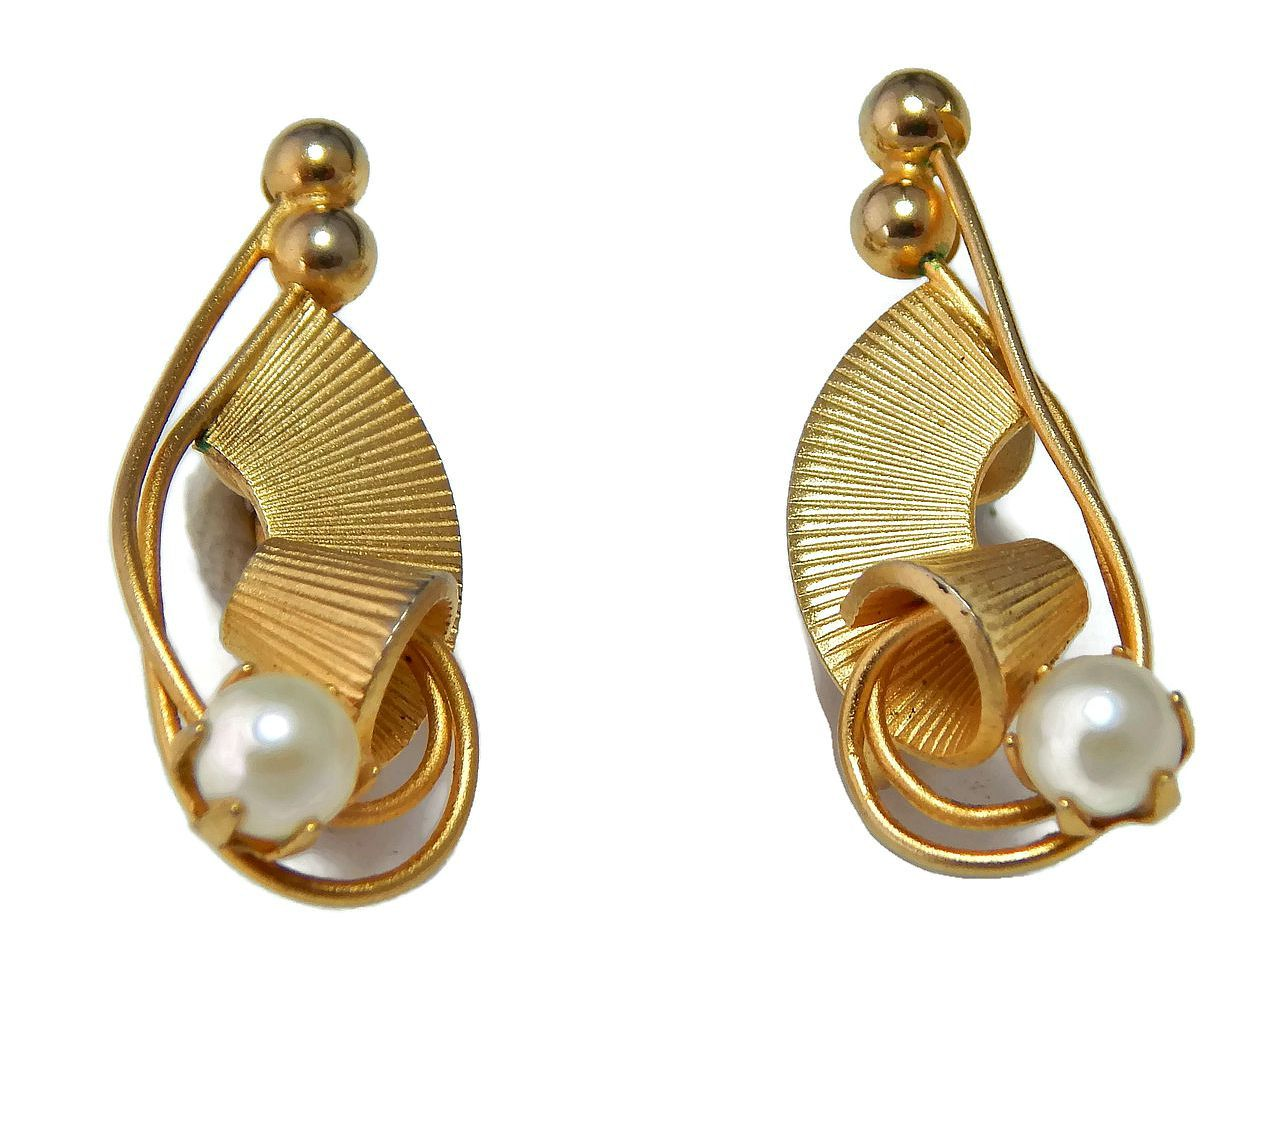 Genuine Pearl Earrings Gold Plated Clip On Ear Bobs By Eclecticvintager On  Etsy